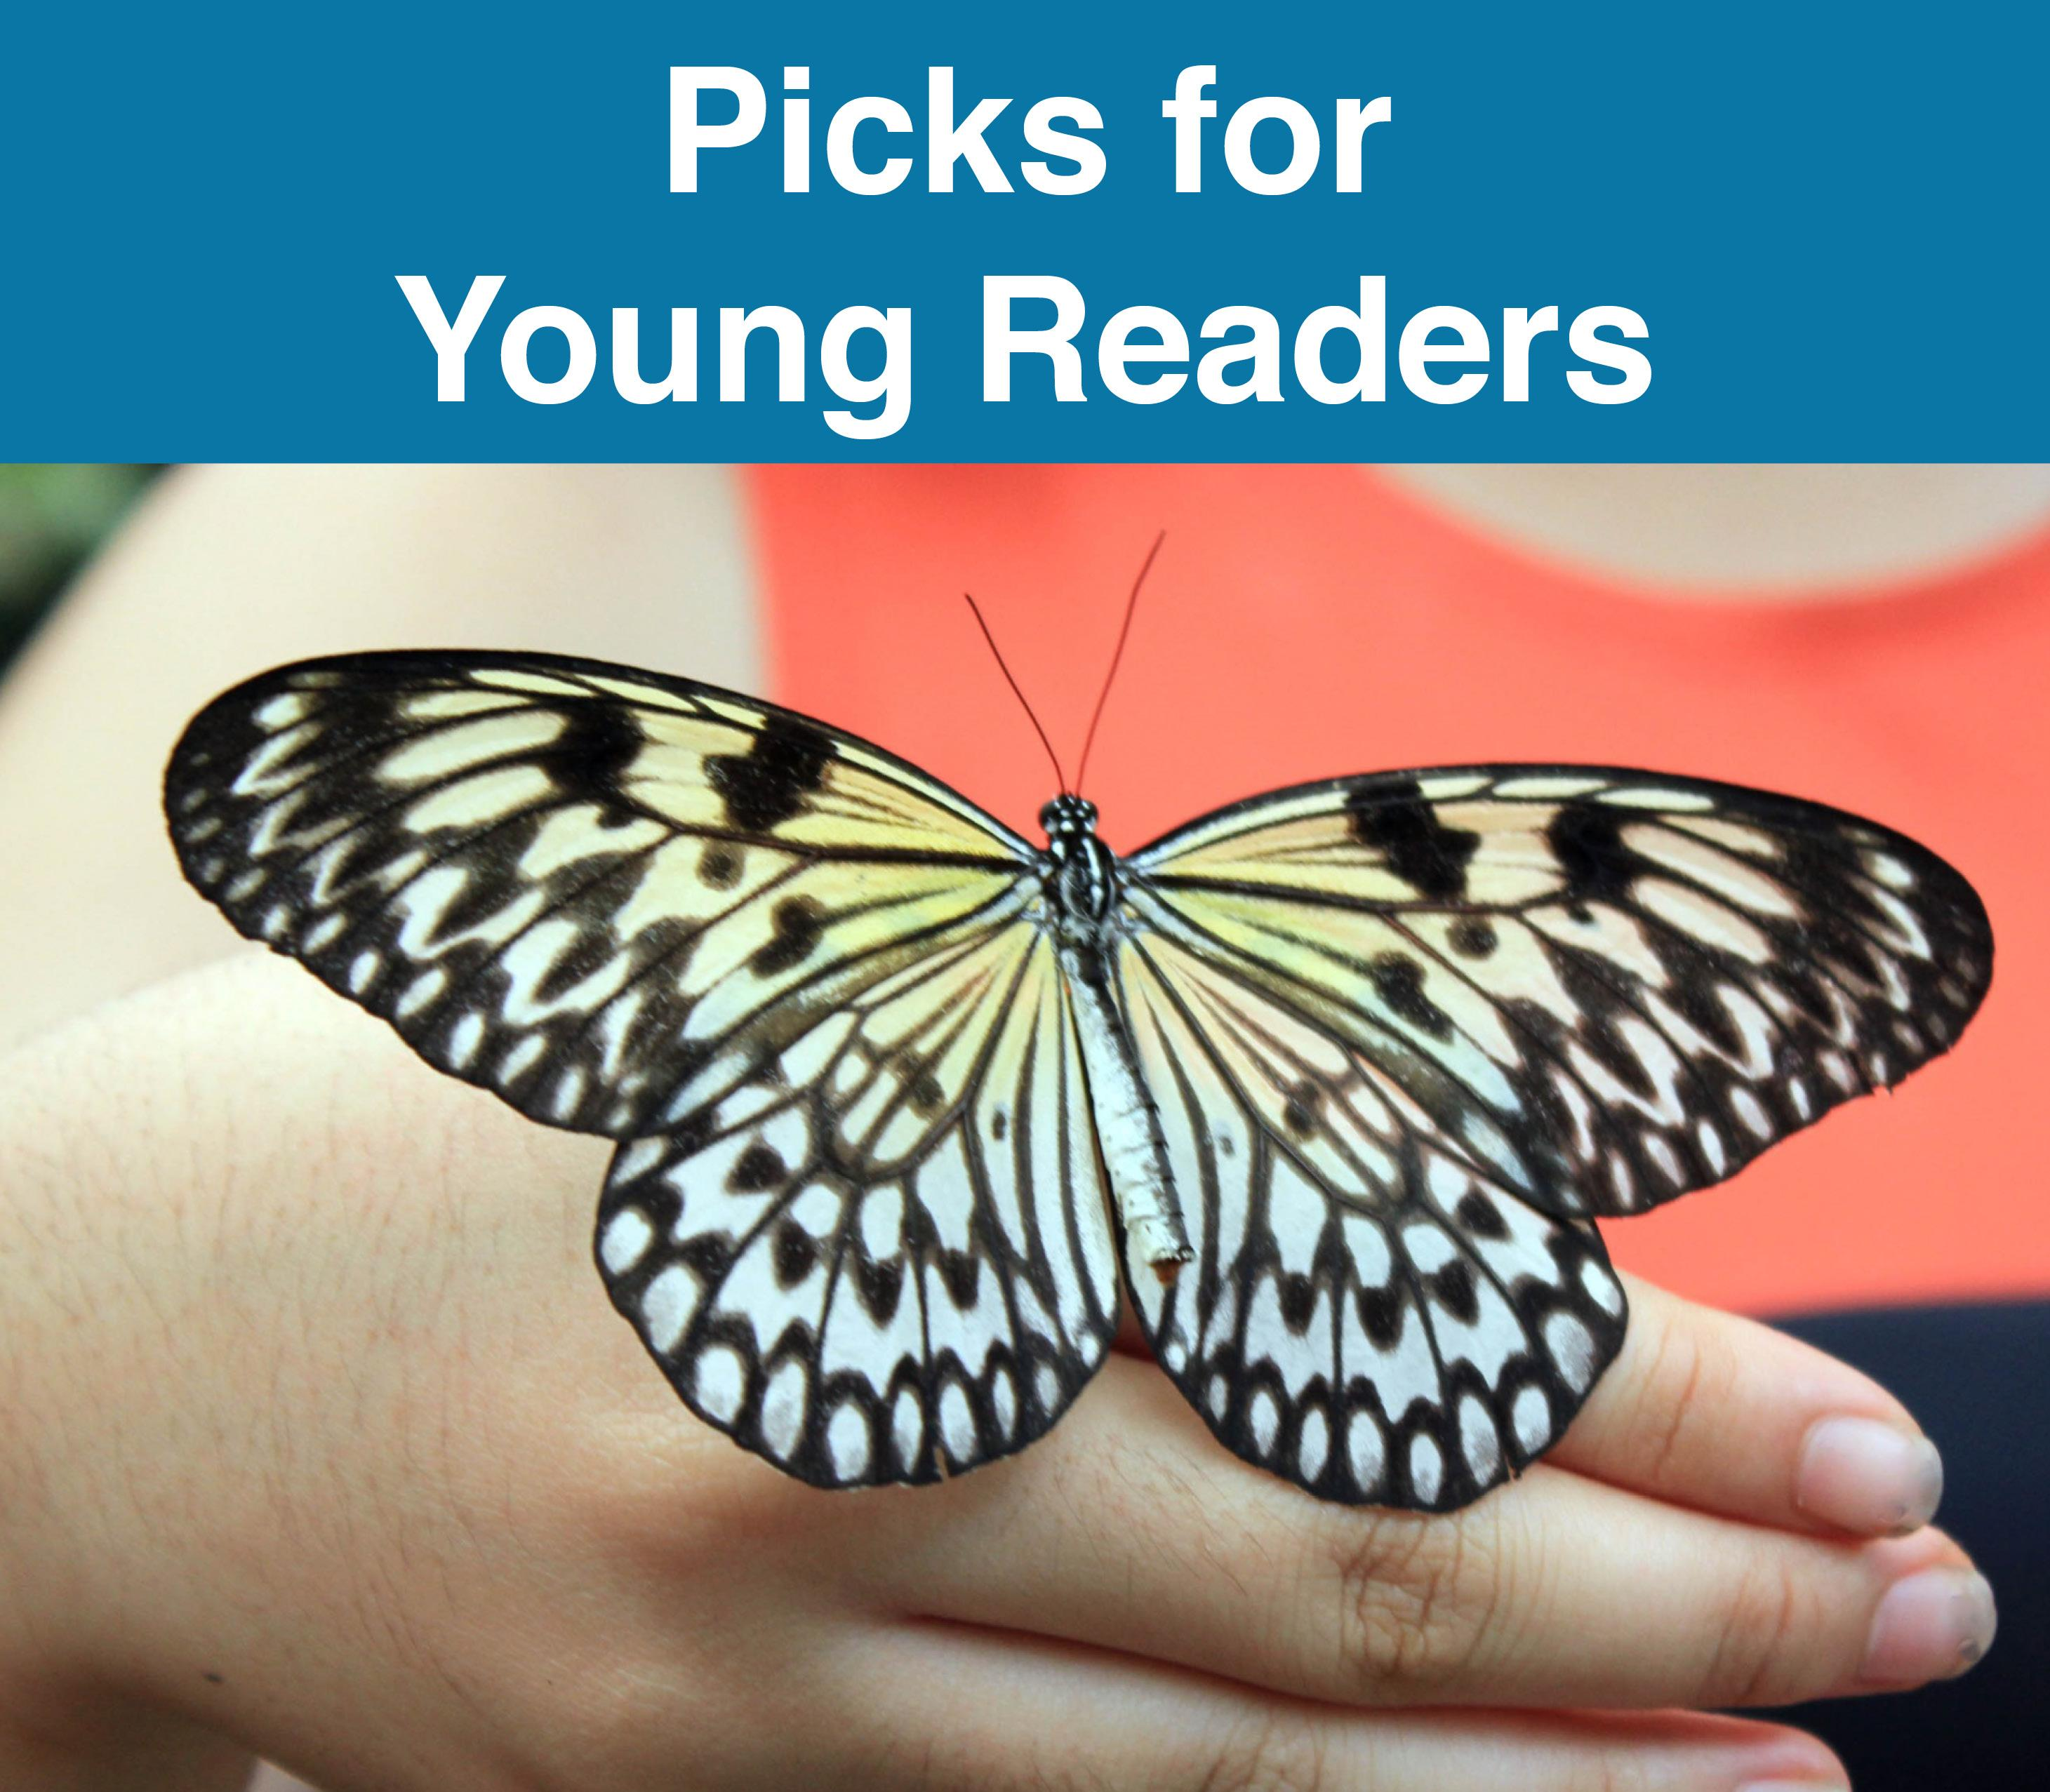 Header: Picks for Young Readers. Image: Young child's hand holding a butterfly